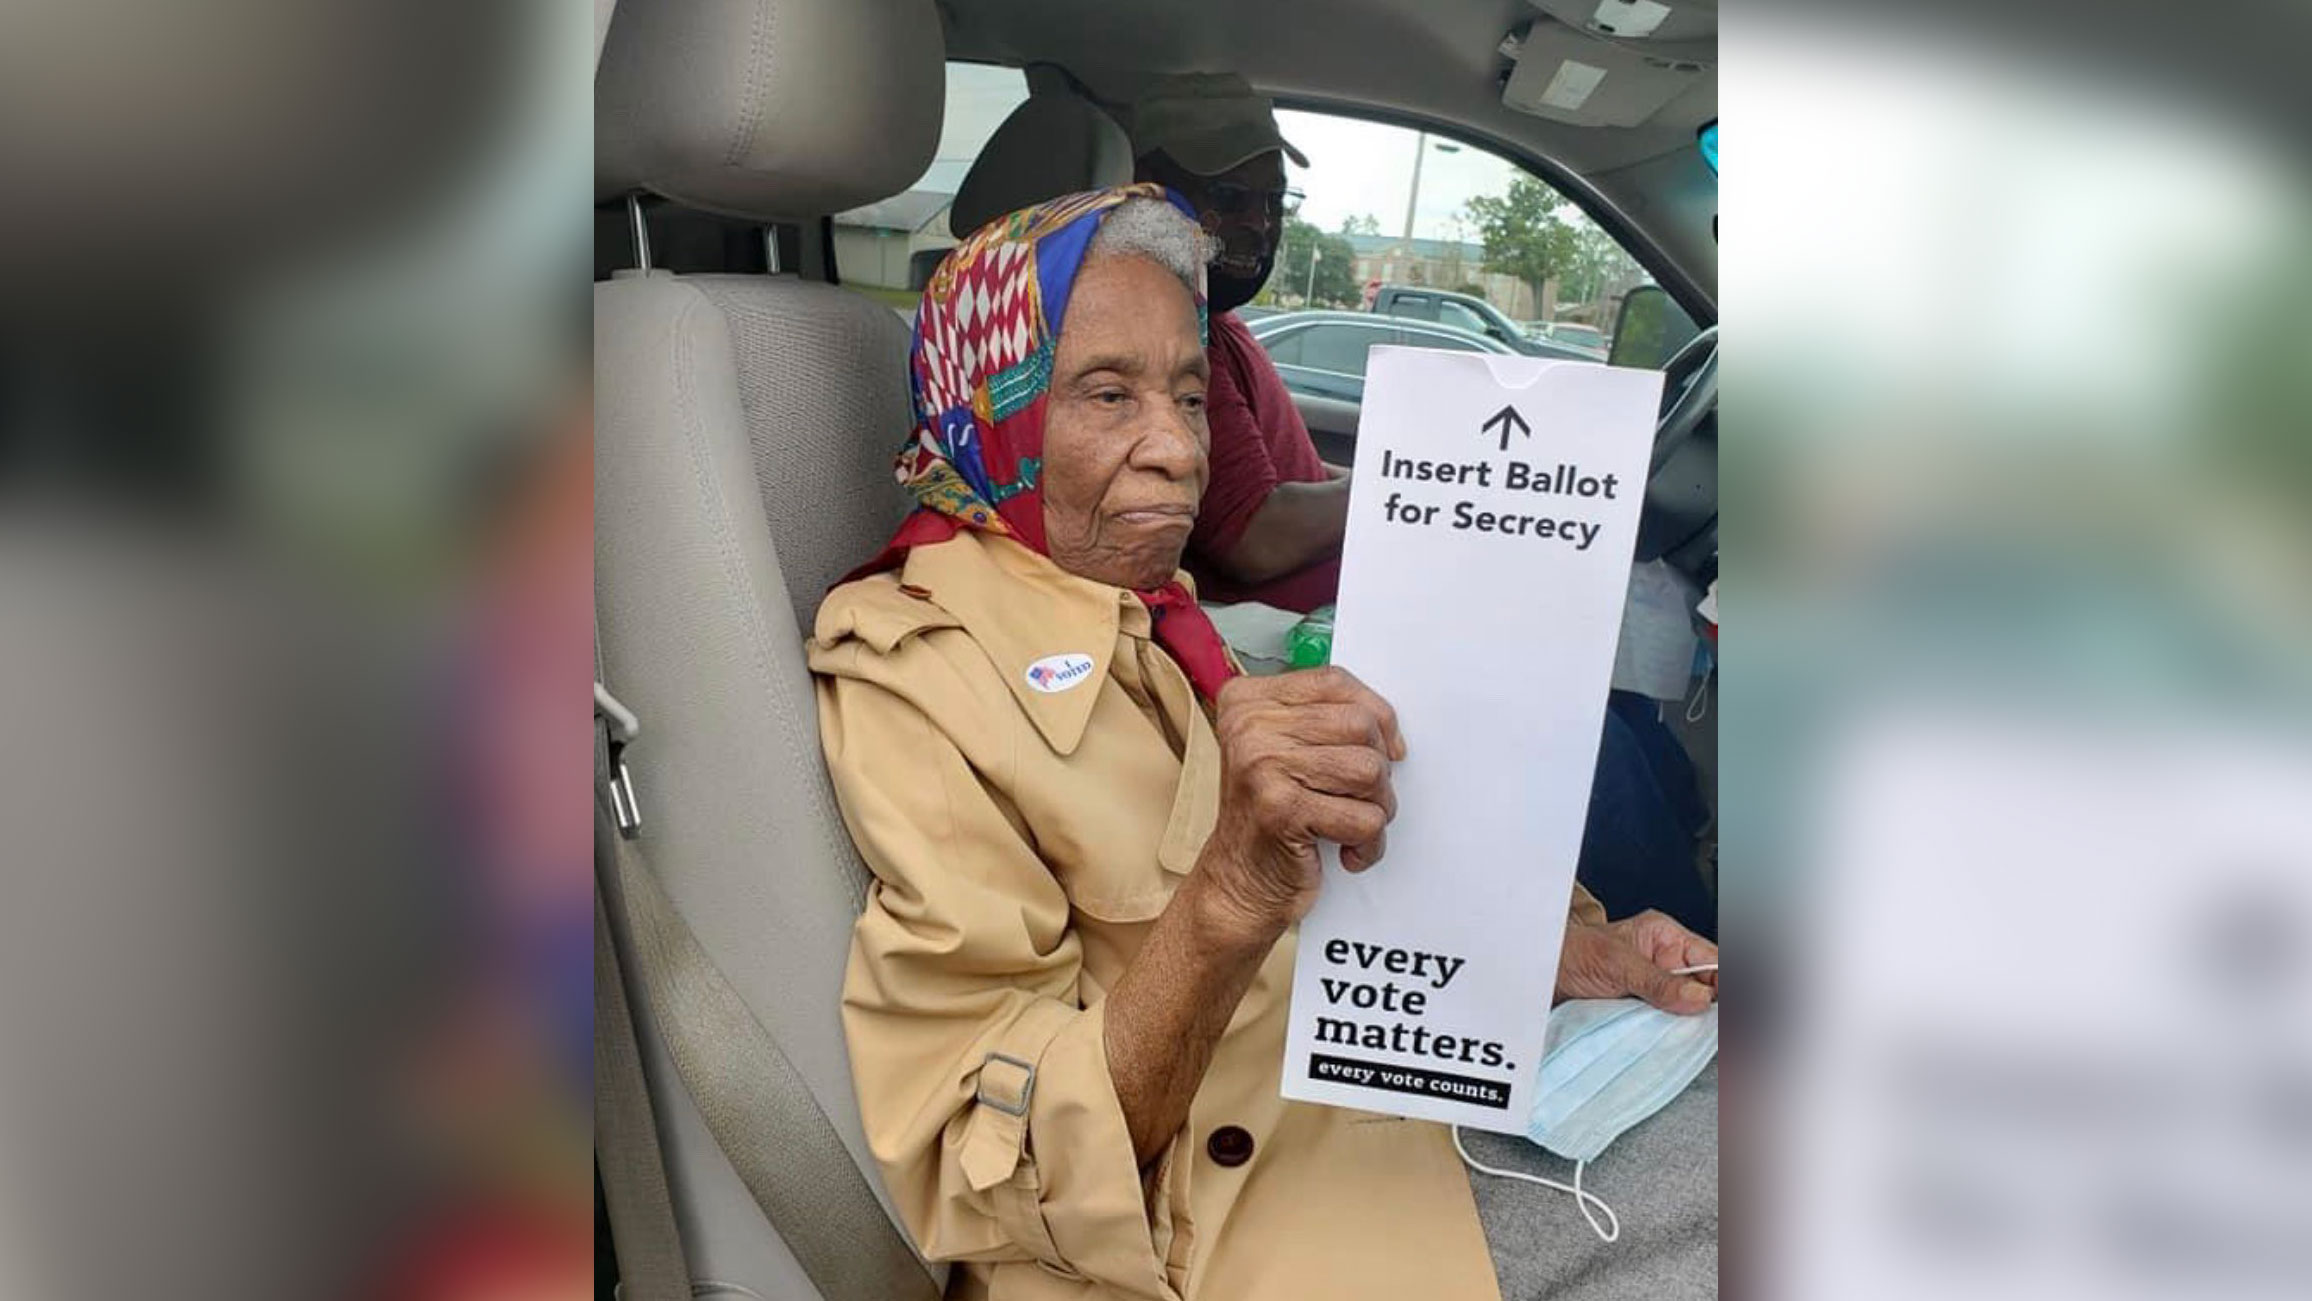 A pandemic didn't deter this 102-year-old from voting